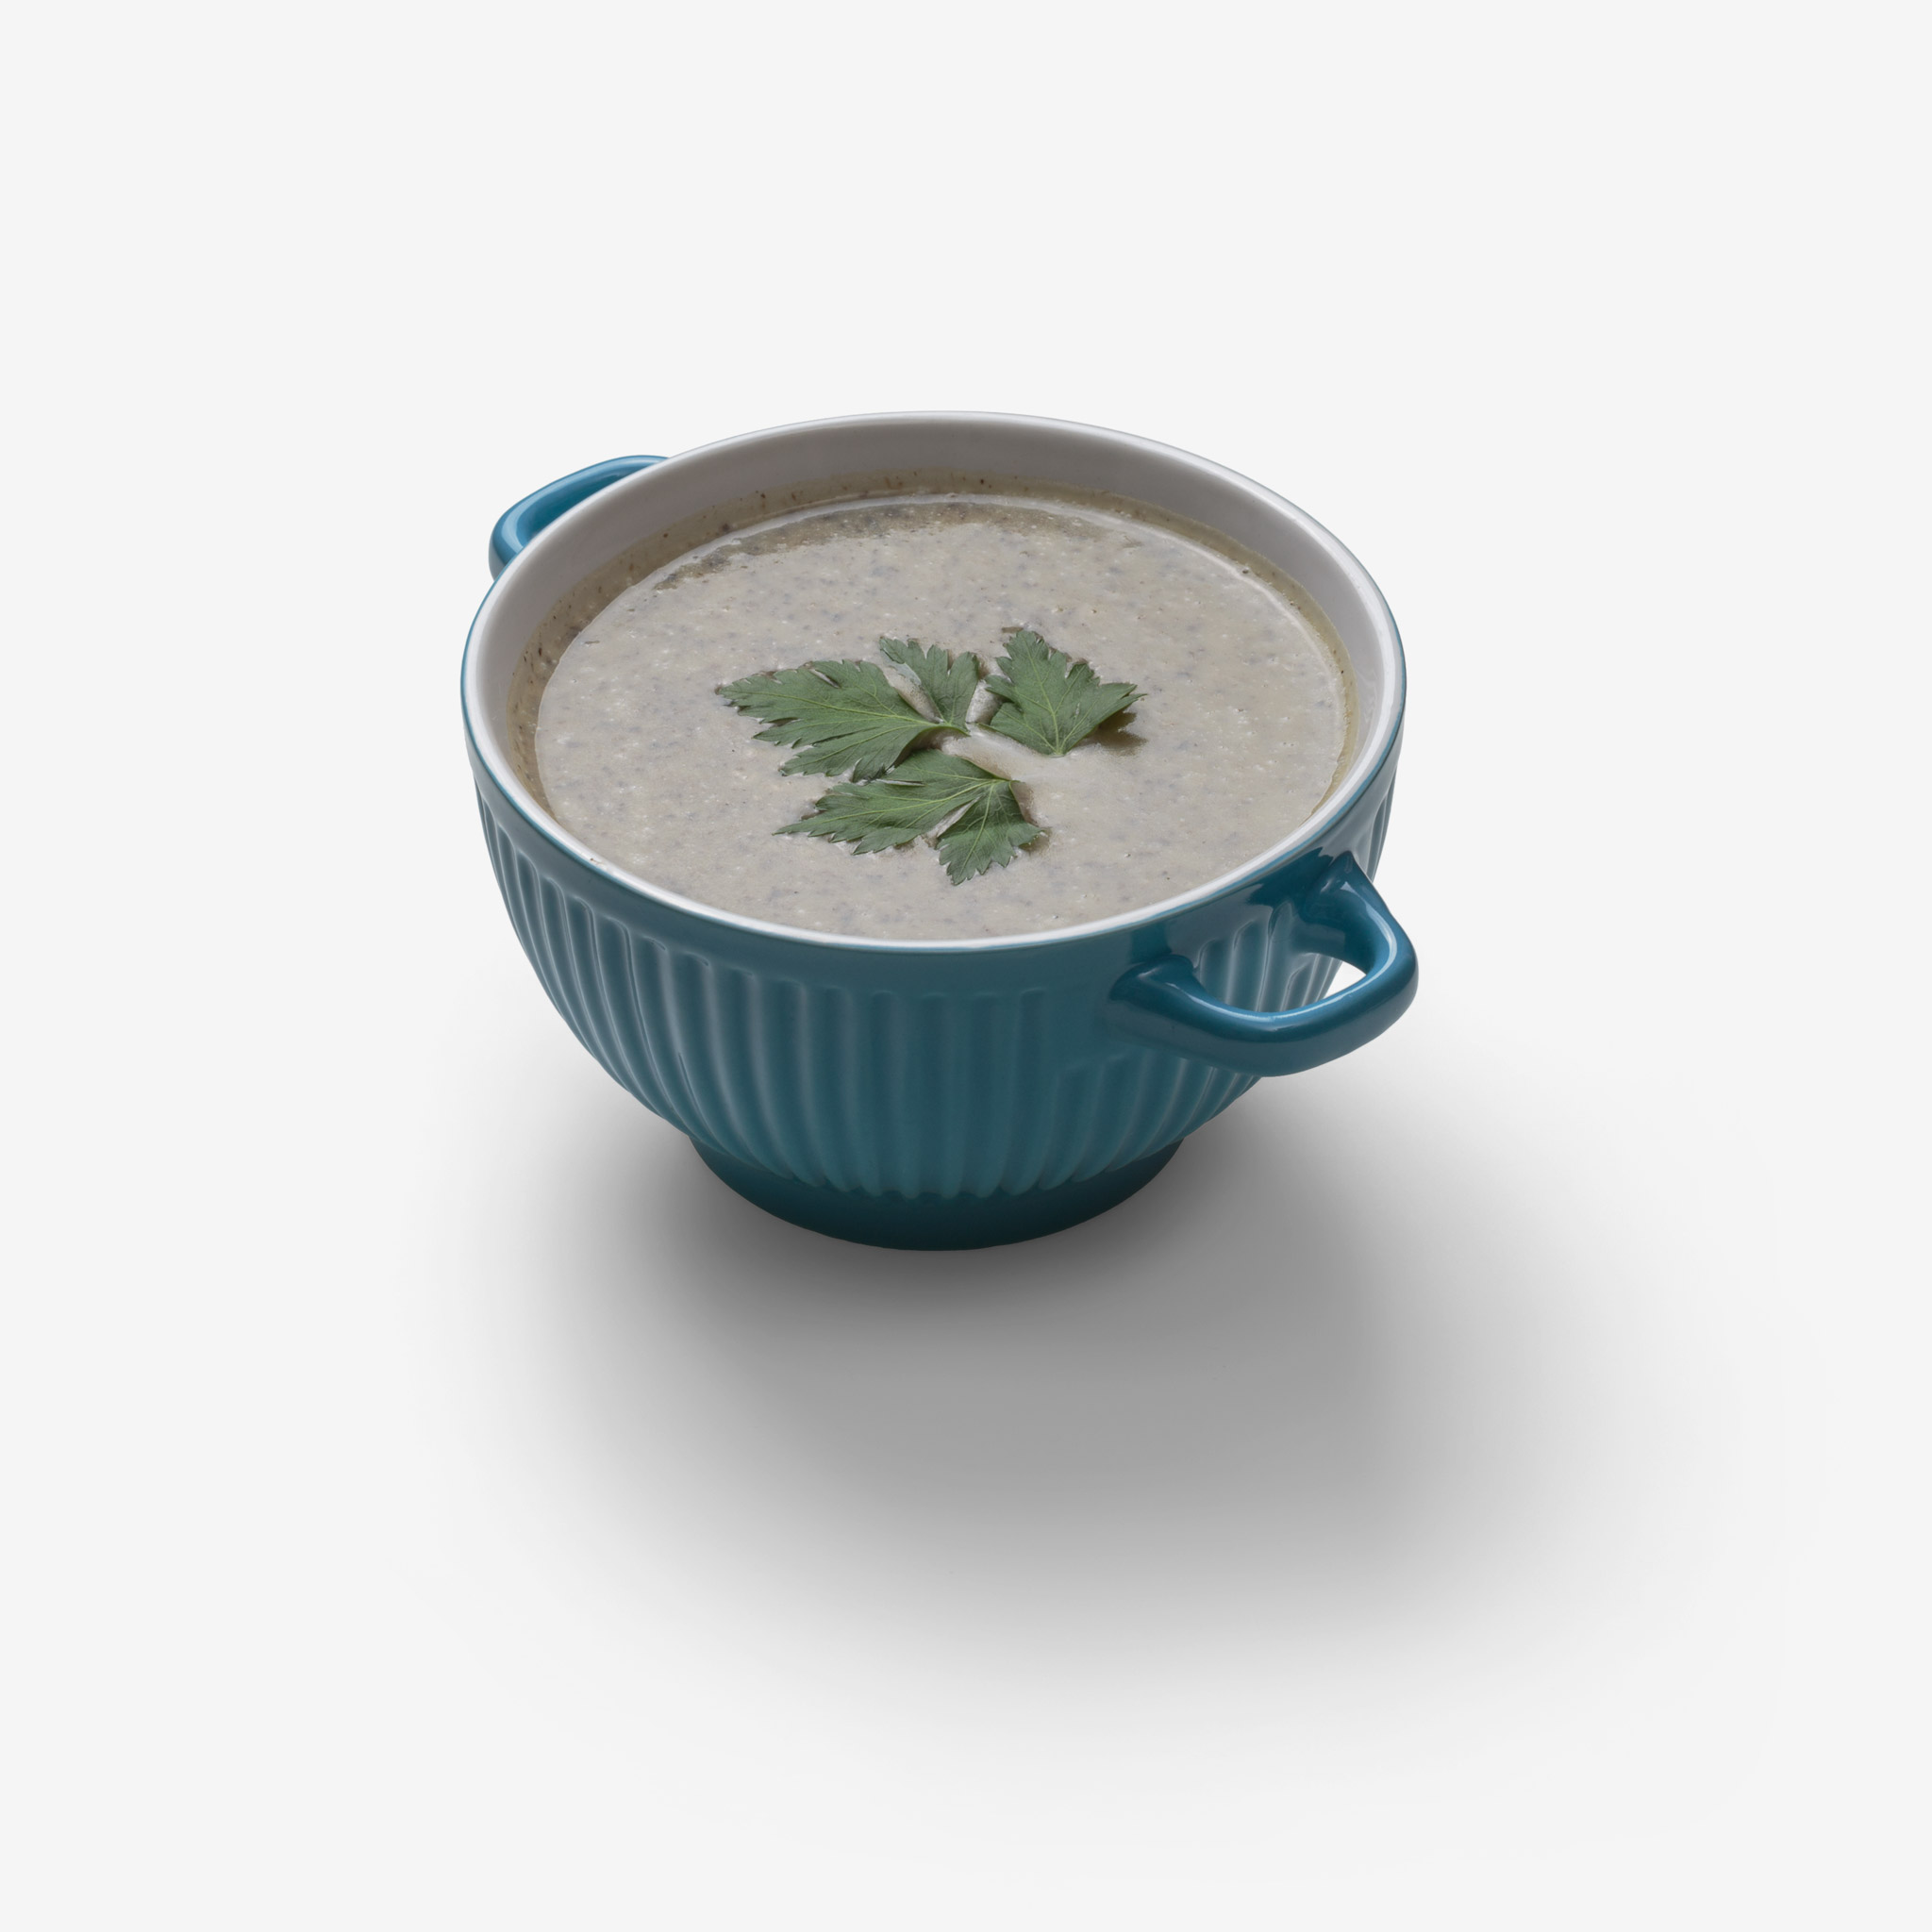 Soup image with transparent background